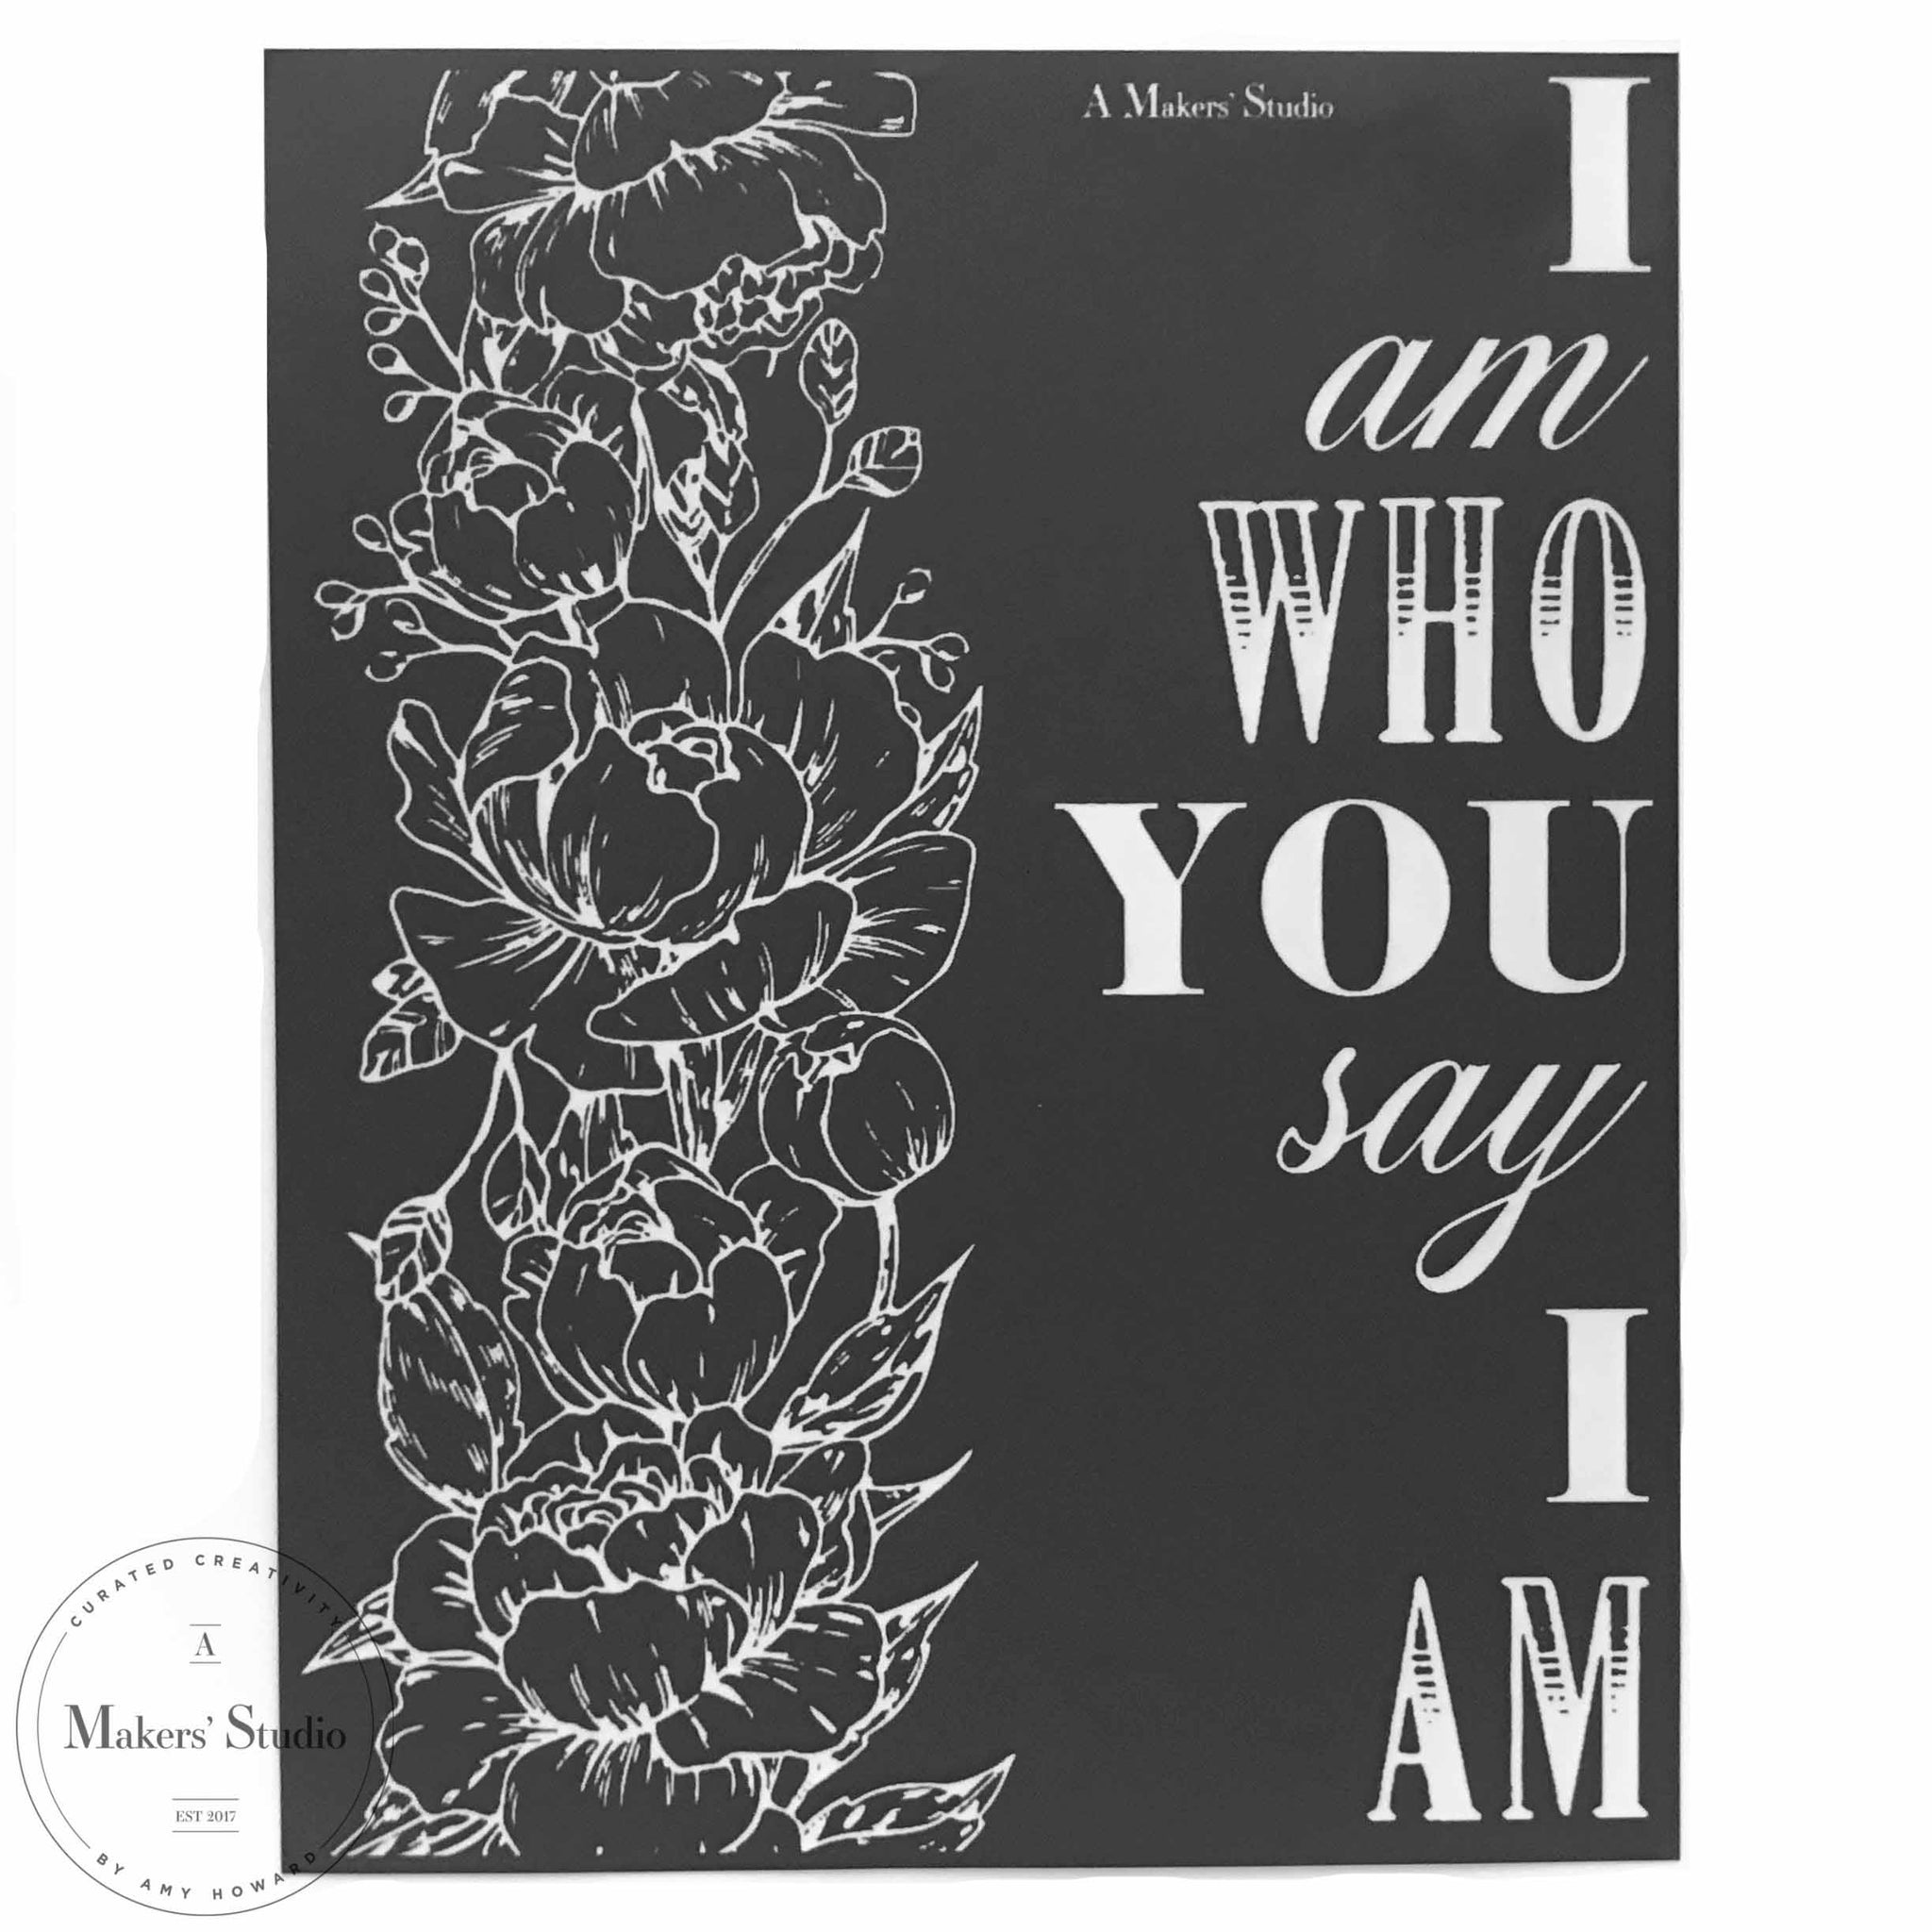 I Am Who You Say I Am - Mesh Stencil 8.5x11